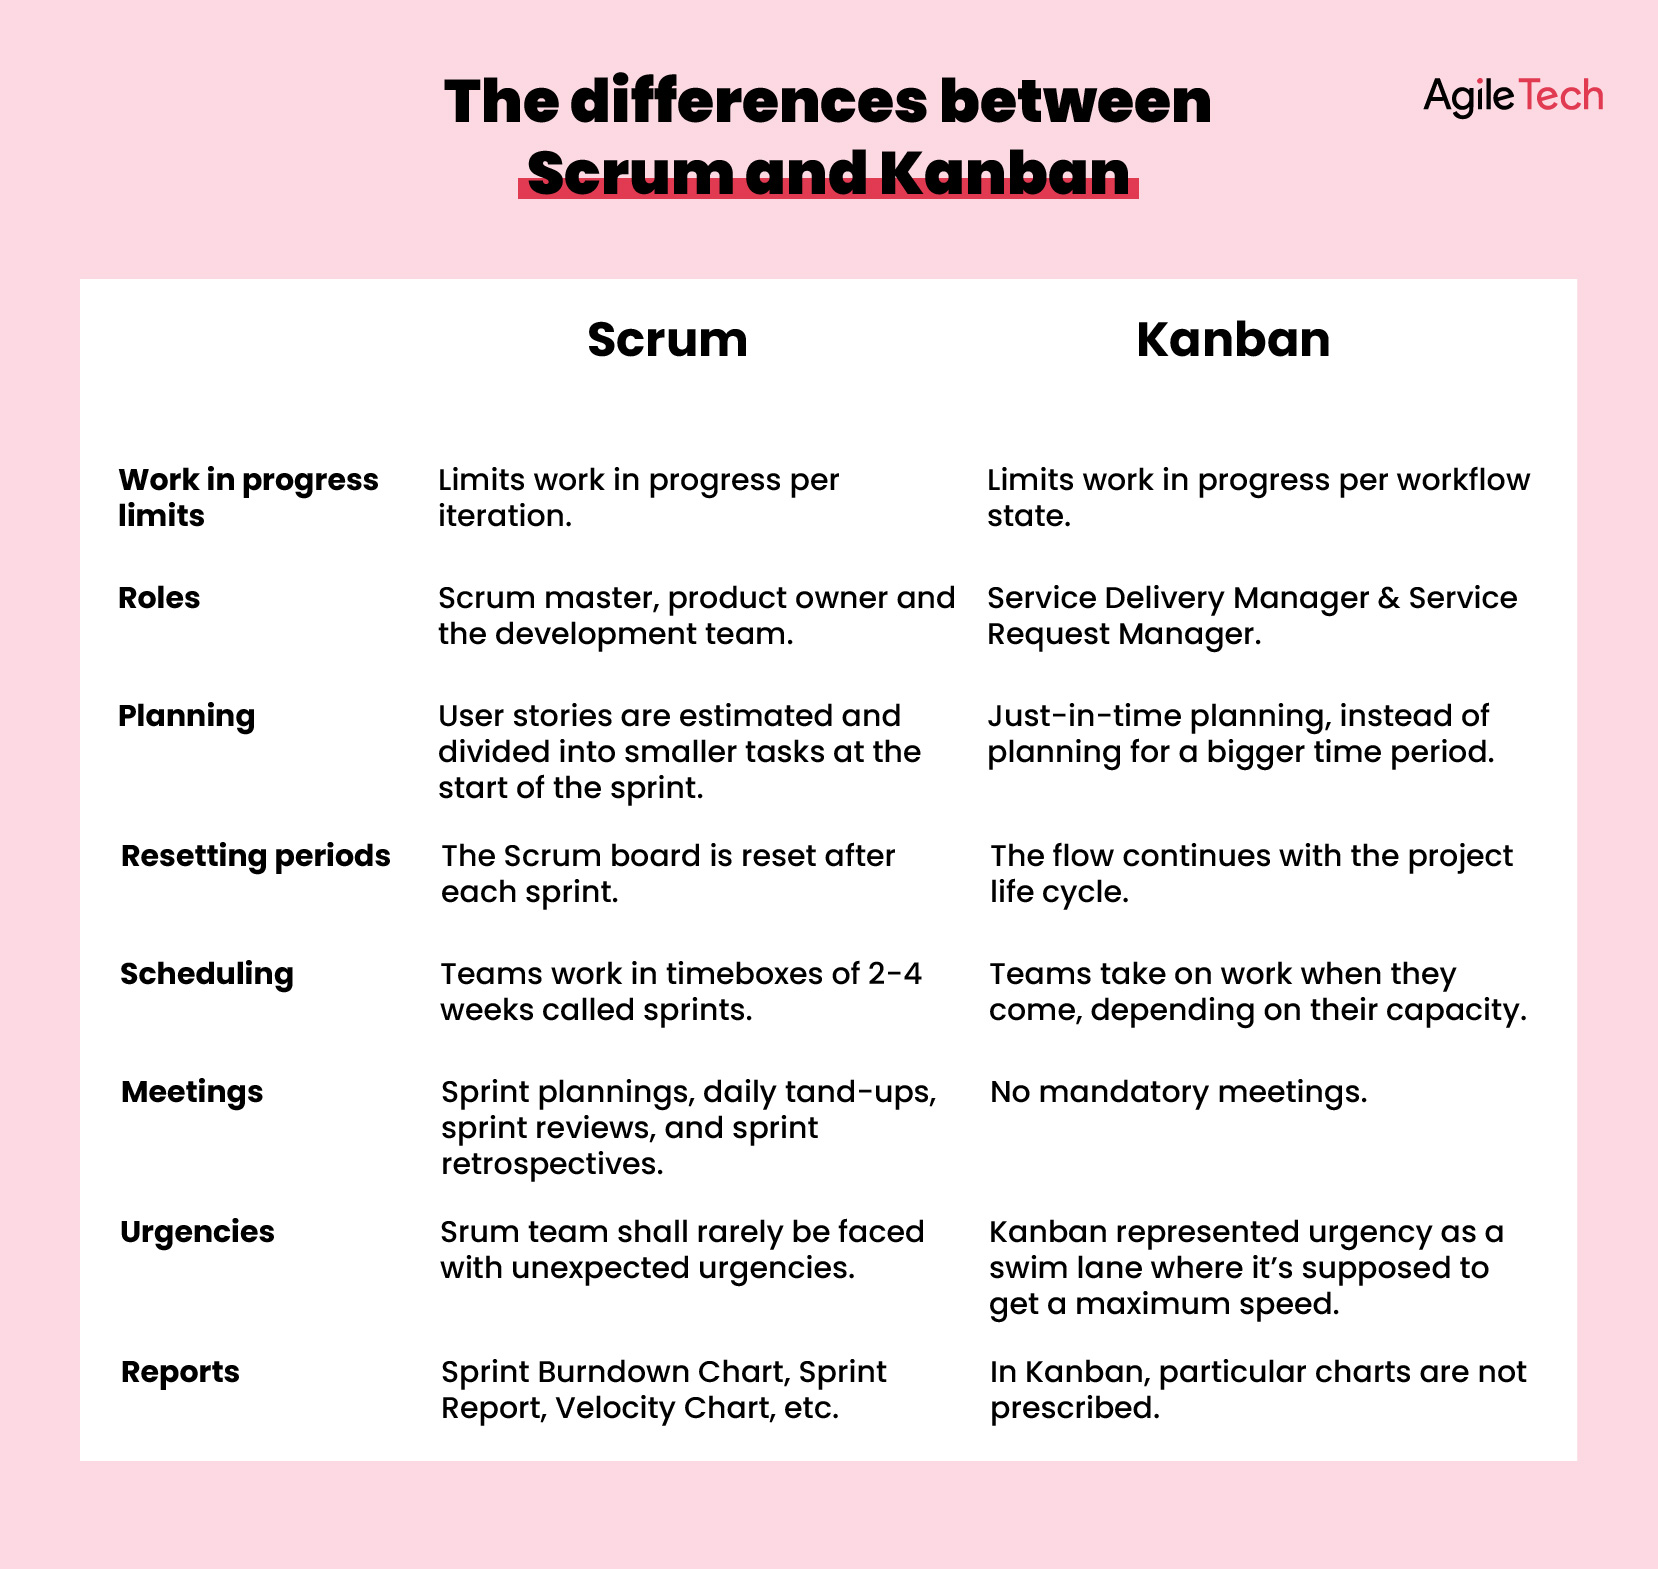 kanban vs scrum which is better, the differences between scrum and kanban, agile sotware development